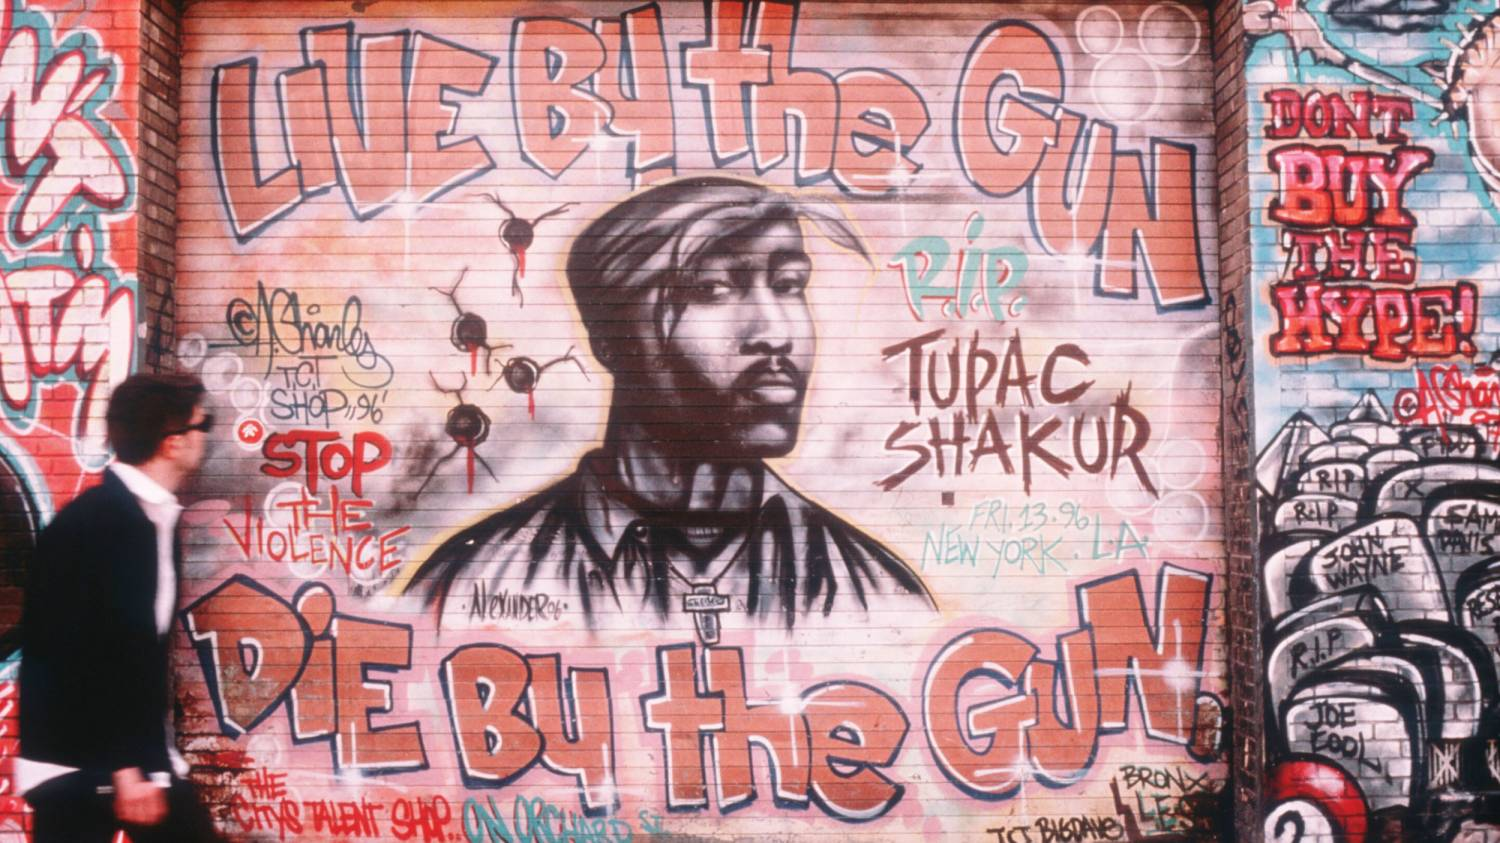 The Murder Of Tupac Shakur Is A Tragedy But The Why Is Not A